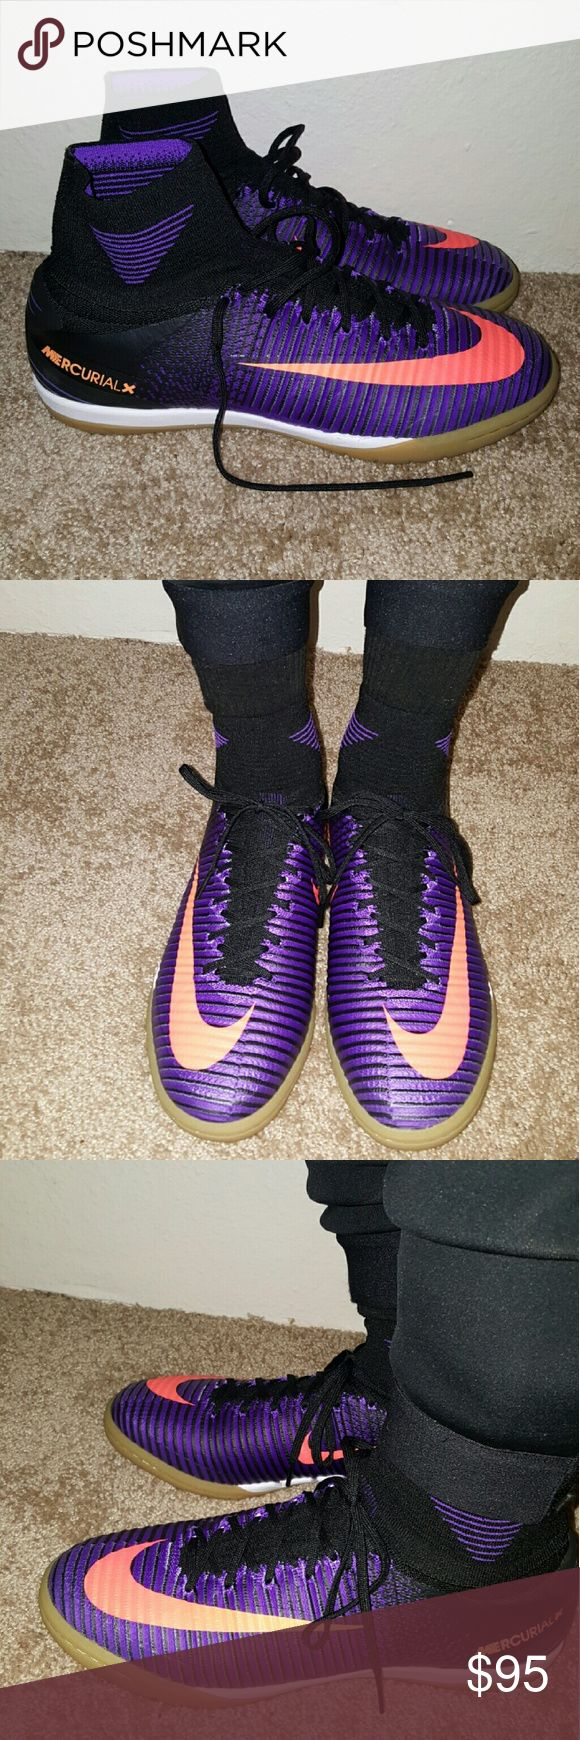 Nike Mercurial X Proximo Soccer Turf Indoor Hello! Today I'm selling my Nike Mercurial X mens soccer shoe I received this as a Christmas gift and there are just a little too tight for Comfort I wear more on the 9.5 side and these are size 9. They are beautiful purple and orange mix that looks great, has the attached sock so that turf beads don't get caught in your shoes while playing. The shoes can be used on turf and indoor surfaces as well as outdoor grass only tried on a couple times…